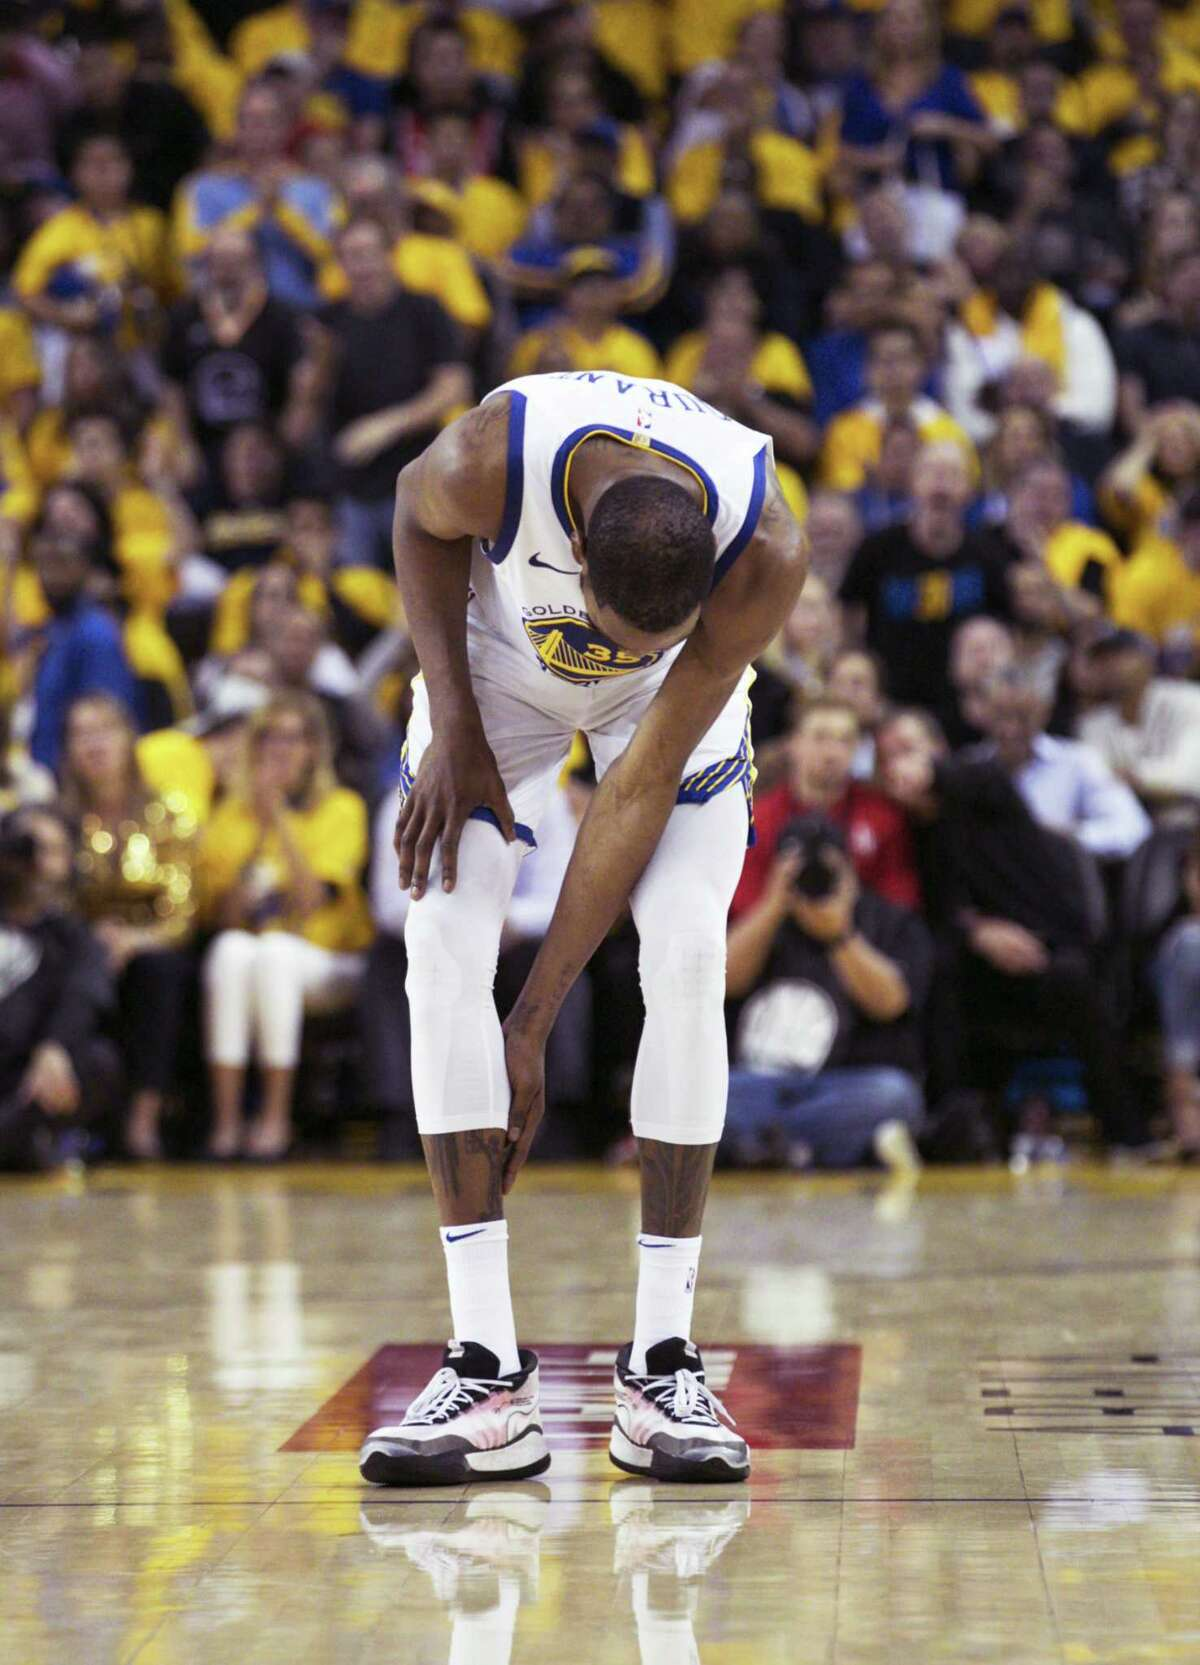 Golden State Warriors Kevin Durant checks his calf in the third quarter during game 5 of the Western Conference Semifinals between the Golden State Warriors and the Houston Rockets at Oracle Arena on Wednesday, May 8, 2019 in Oakland, Calif.